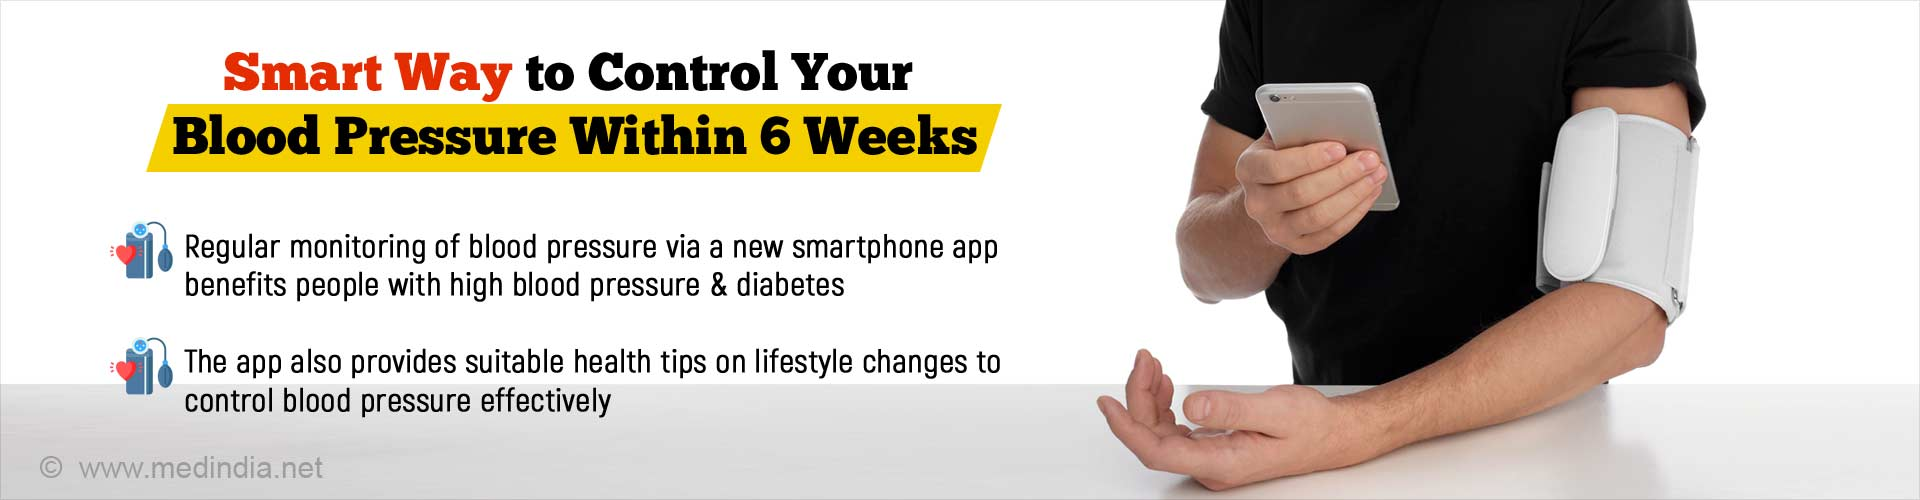 Smart way to control your blood pressure within 6 weeks. Regular monitoring of blood pressure via a new smartphone app benefits people with high blood pressure and diabetes. The app also provides suitable health tips on lifestyle changes to control blood pressure effectively.